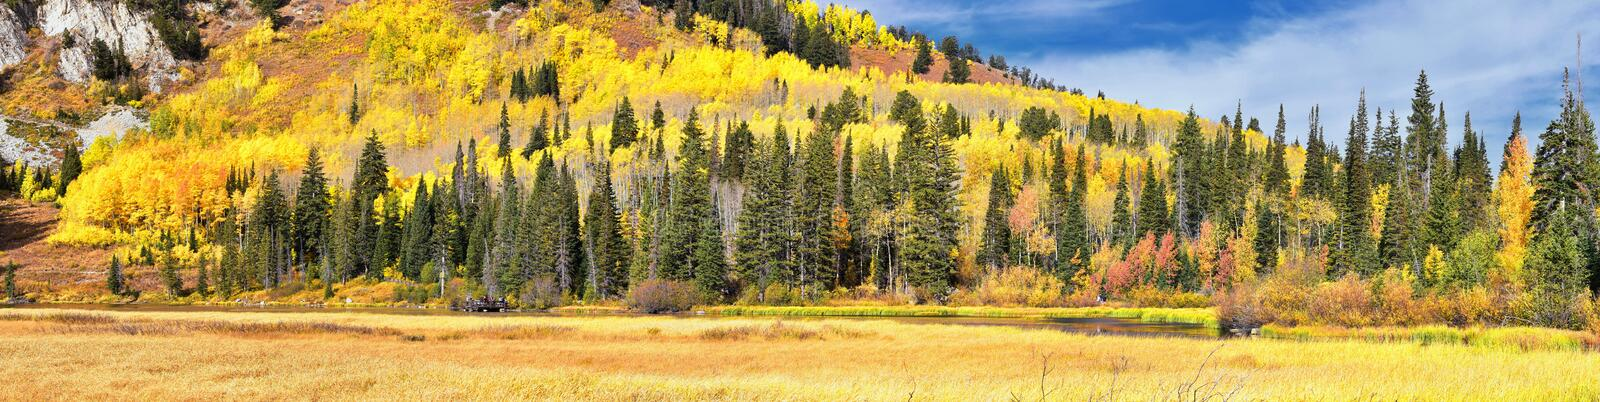 Silver Lake by Solitude and Brighton Ski resort in Big Cottonwood Canyon. Panoramic Views from the hiking and boardwalk trails of. The surrounding mountains royalty free stock photos